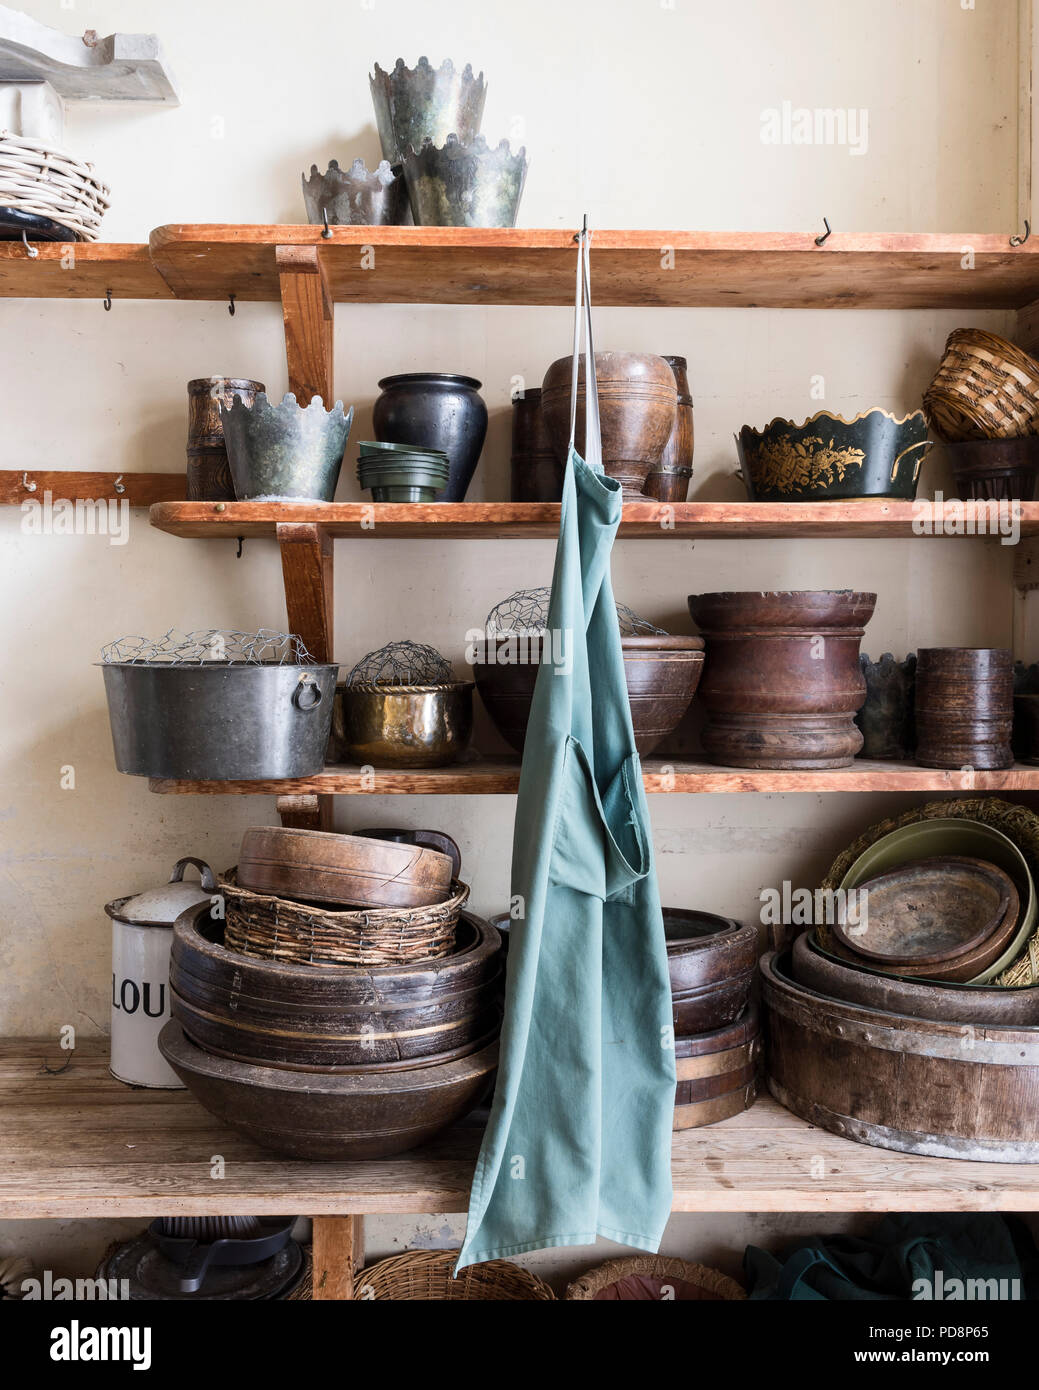 Collection of eathenware gardening pots on wooden shelves - Stock Image